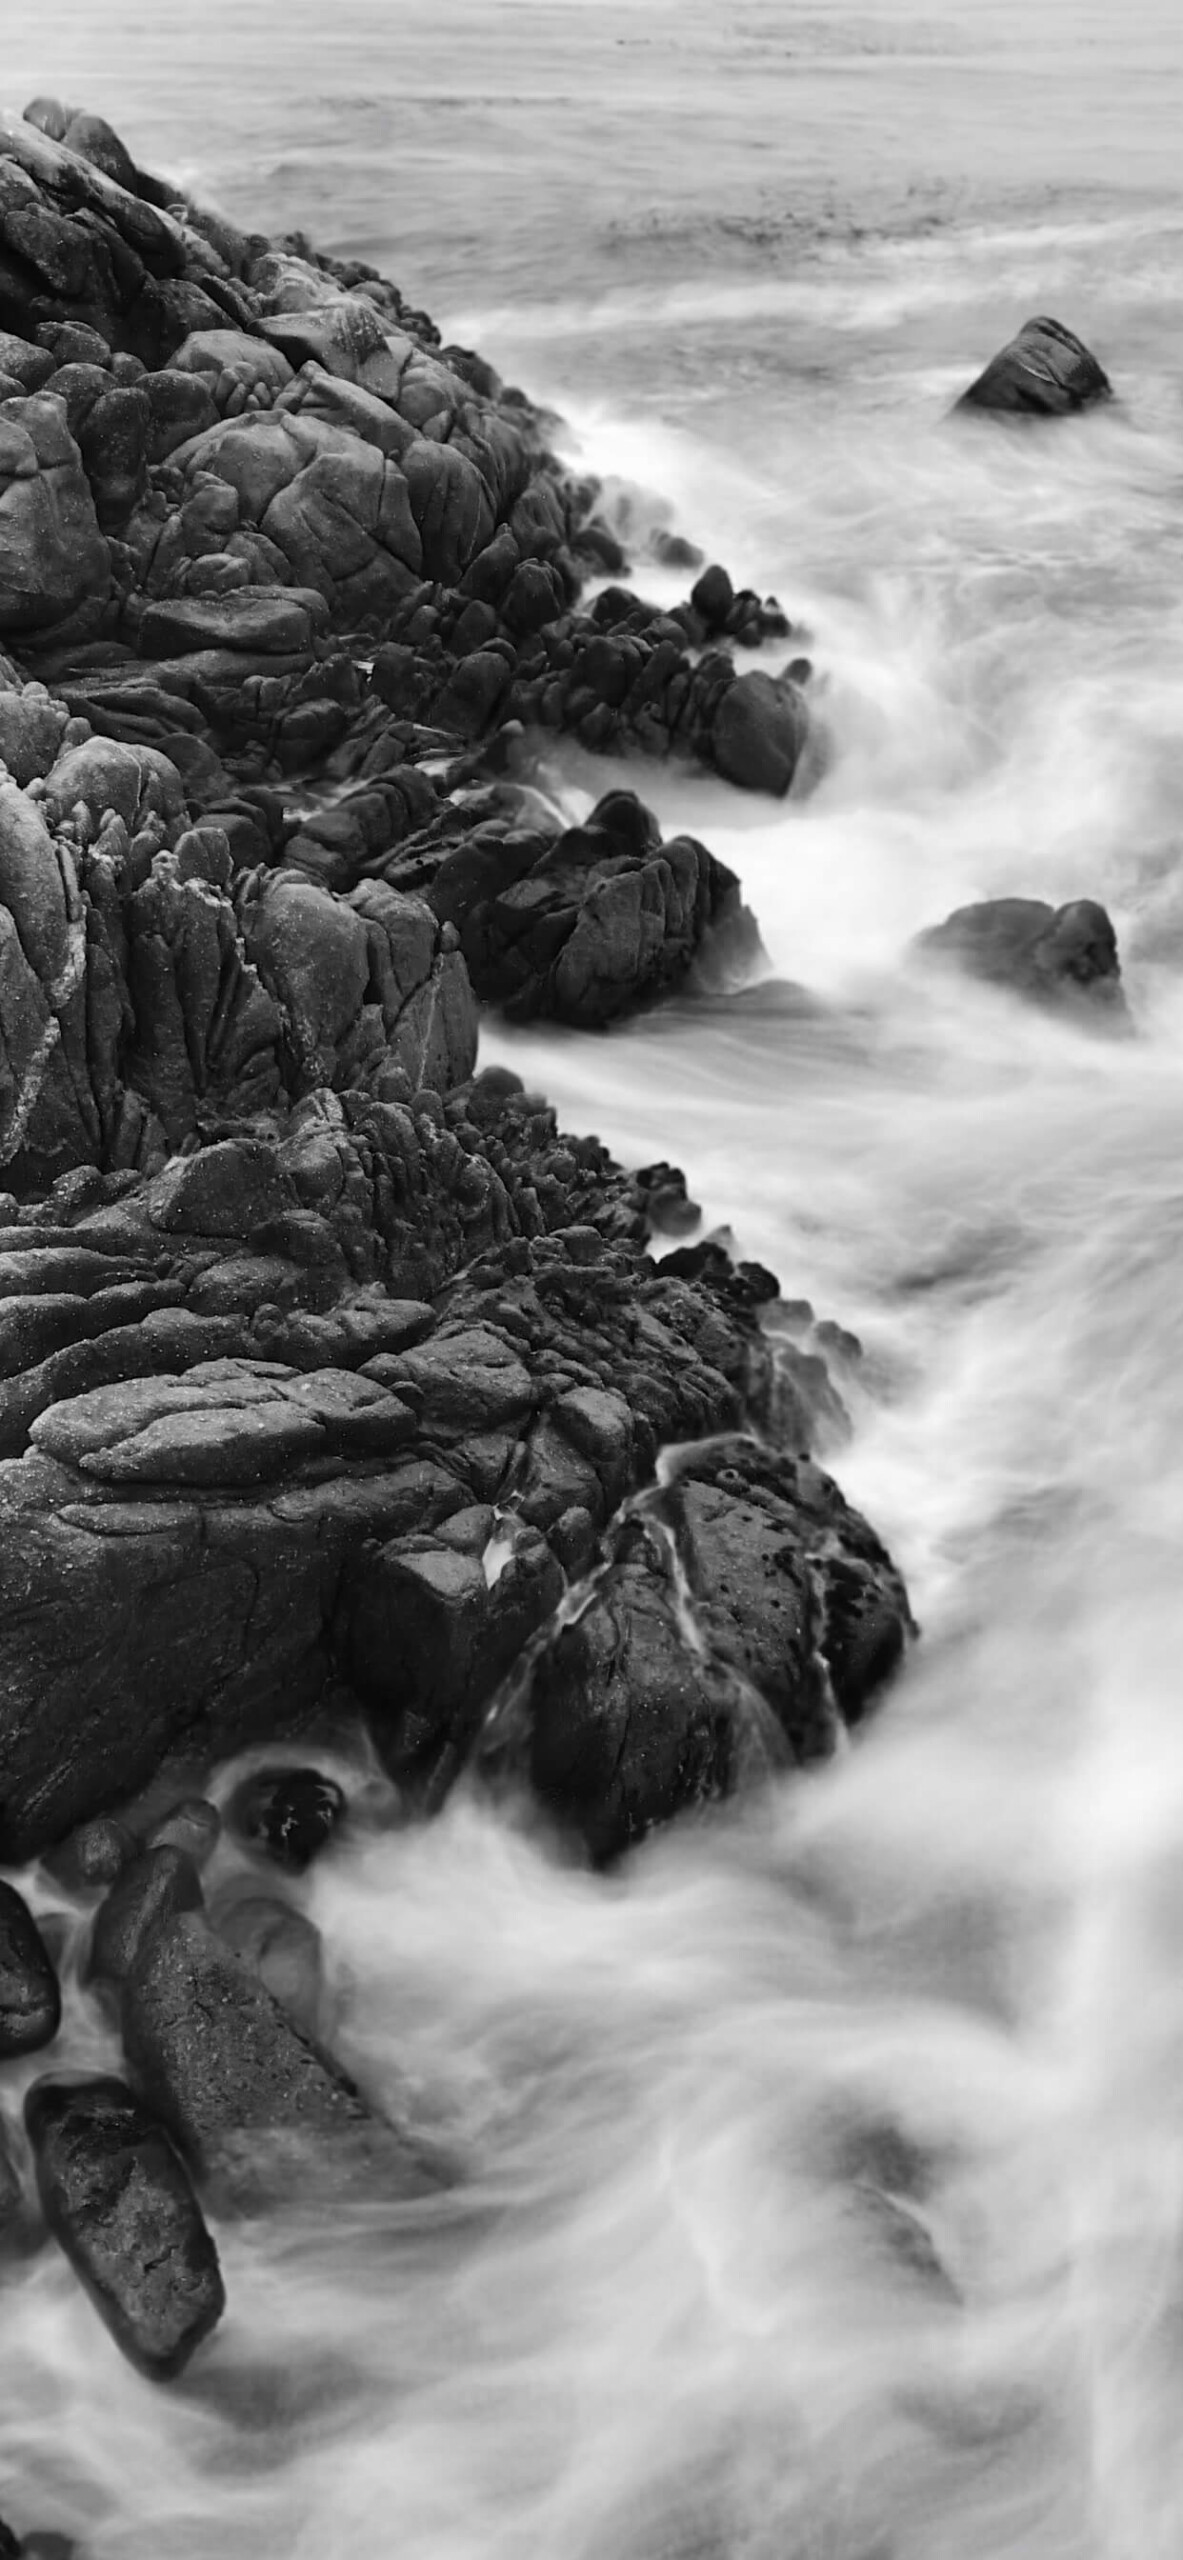 Blur, Long Exposure, Motion, and Water Wallpaper for iPhone XS Max